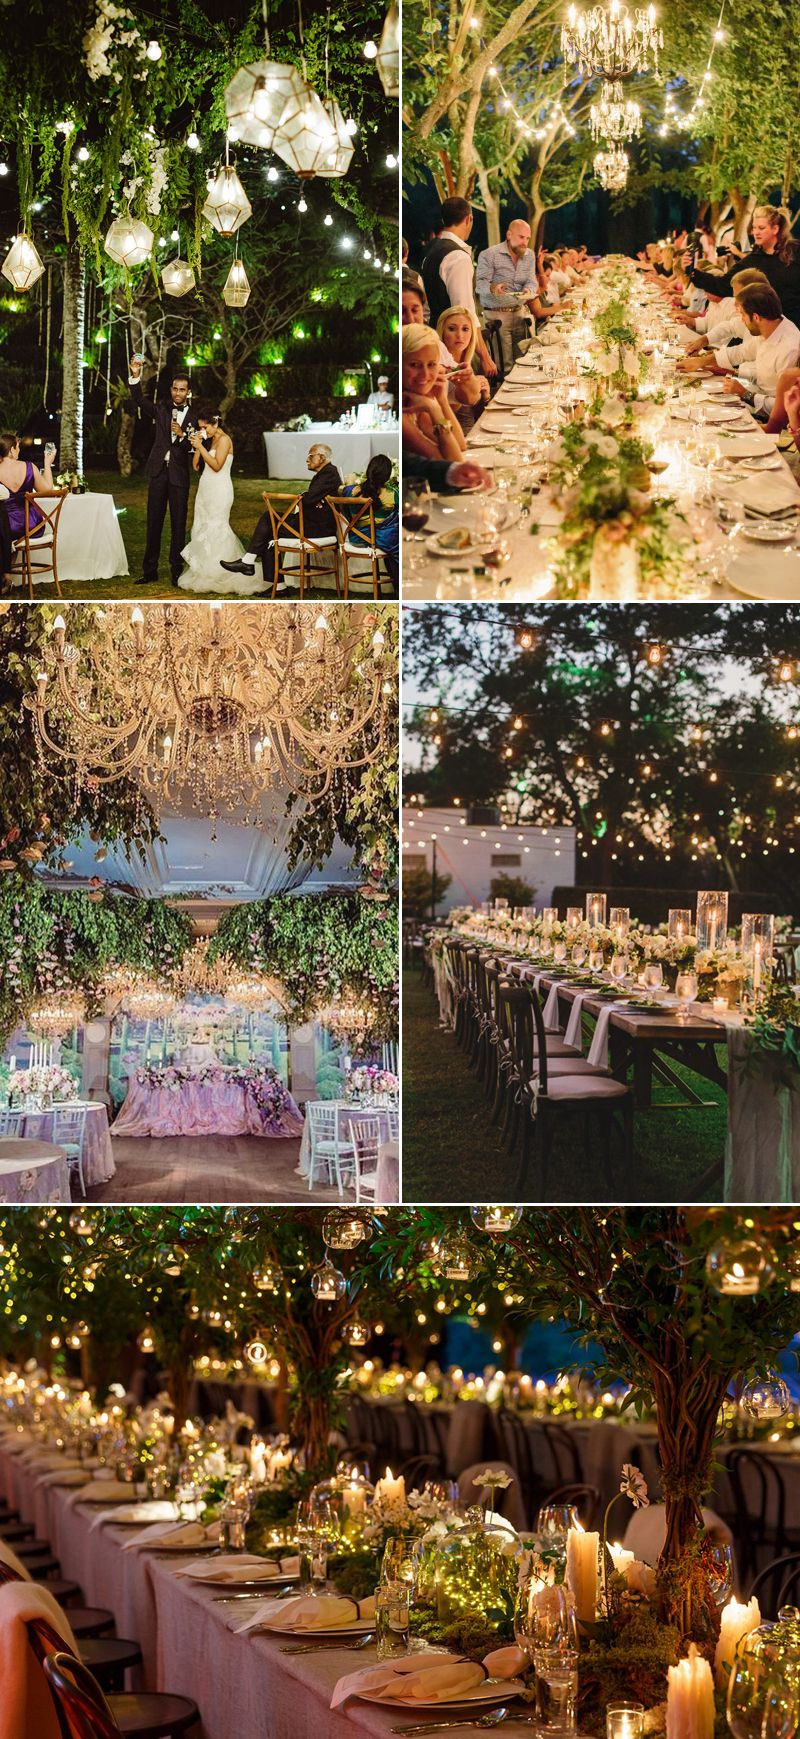 Wedding decorations trees with lights  Pin by Tilda on Weddings  Pinterest  Wedding Weddings and Reception